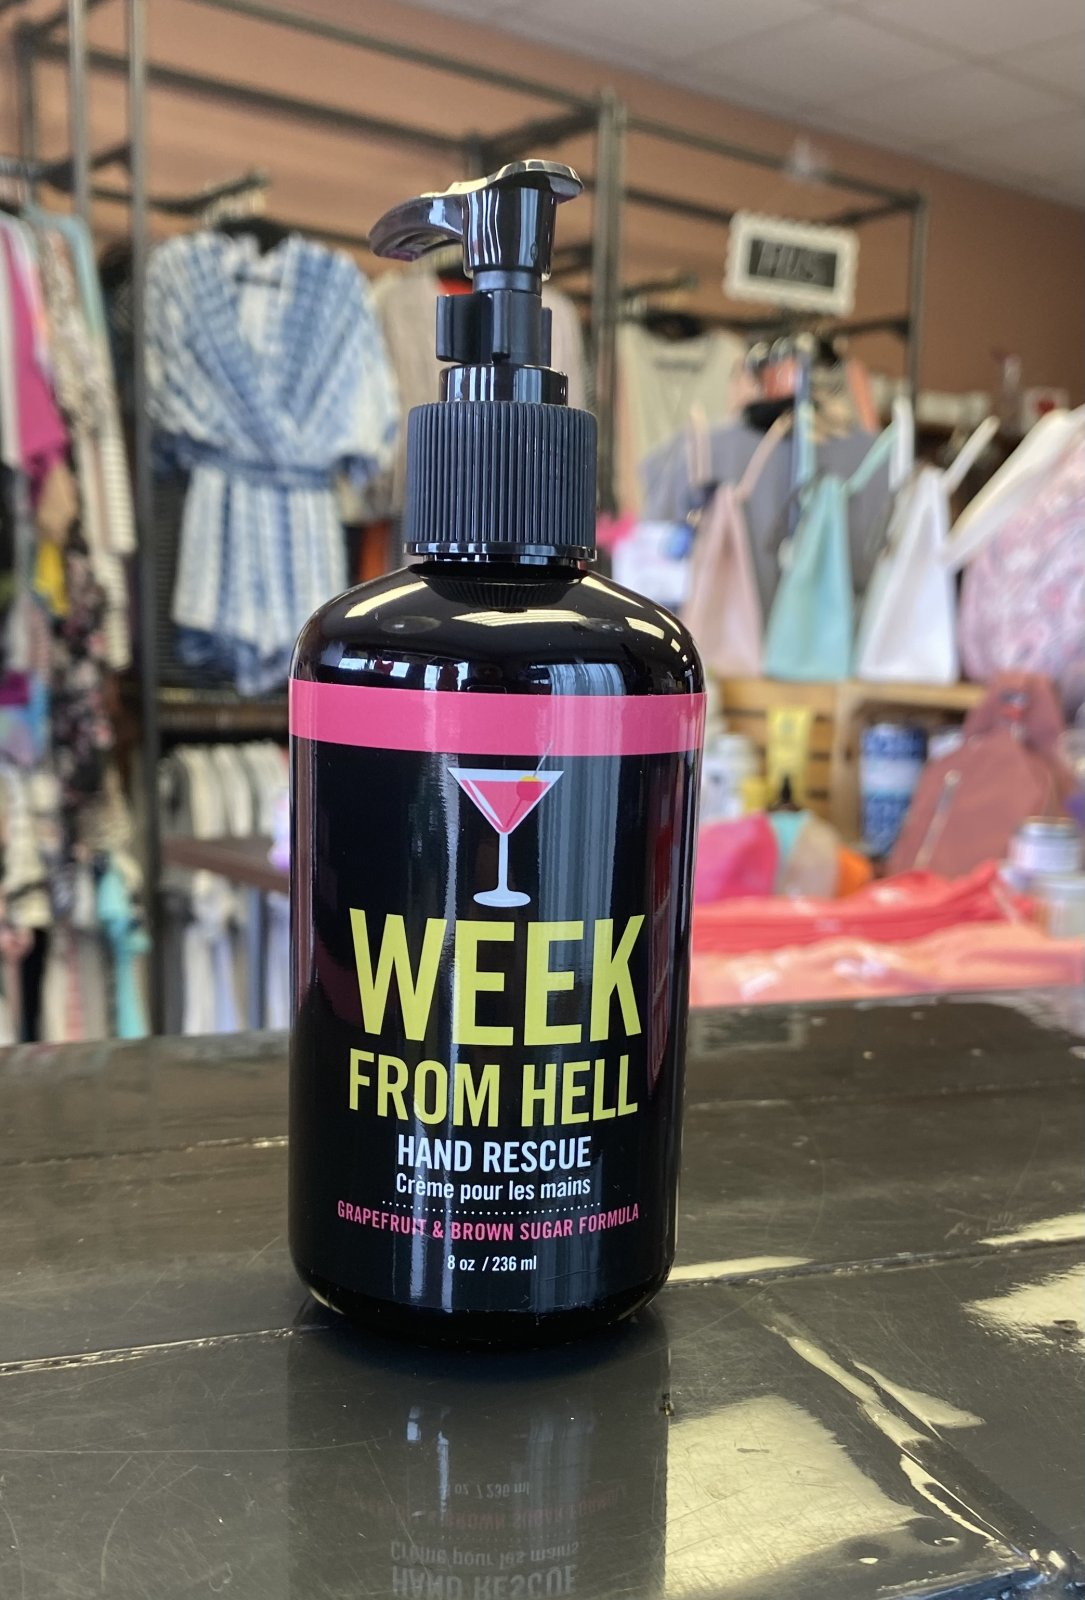 Week From Hell 8oz Hand Rescue